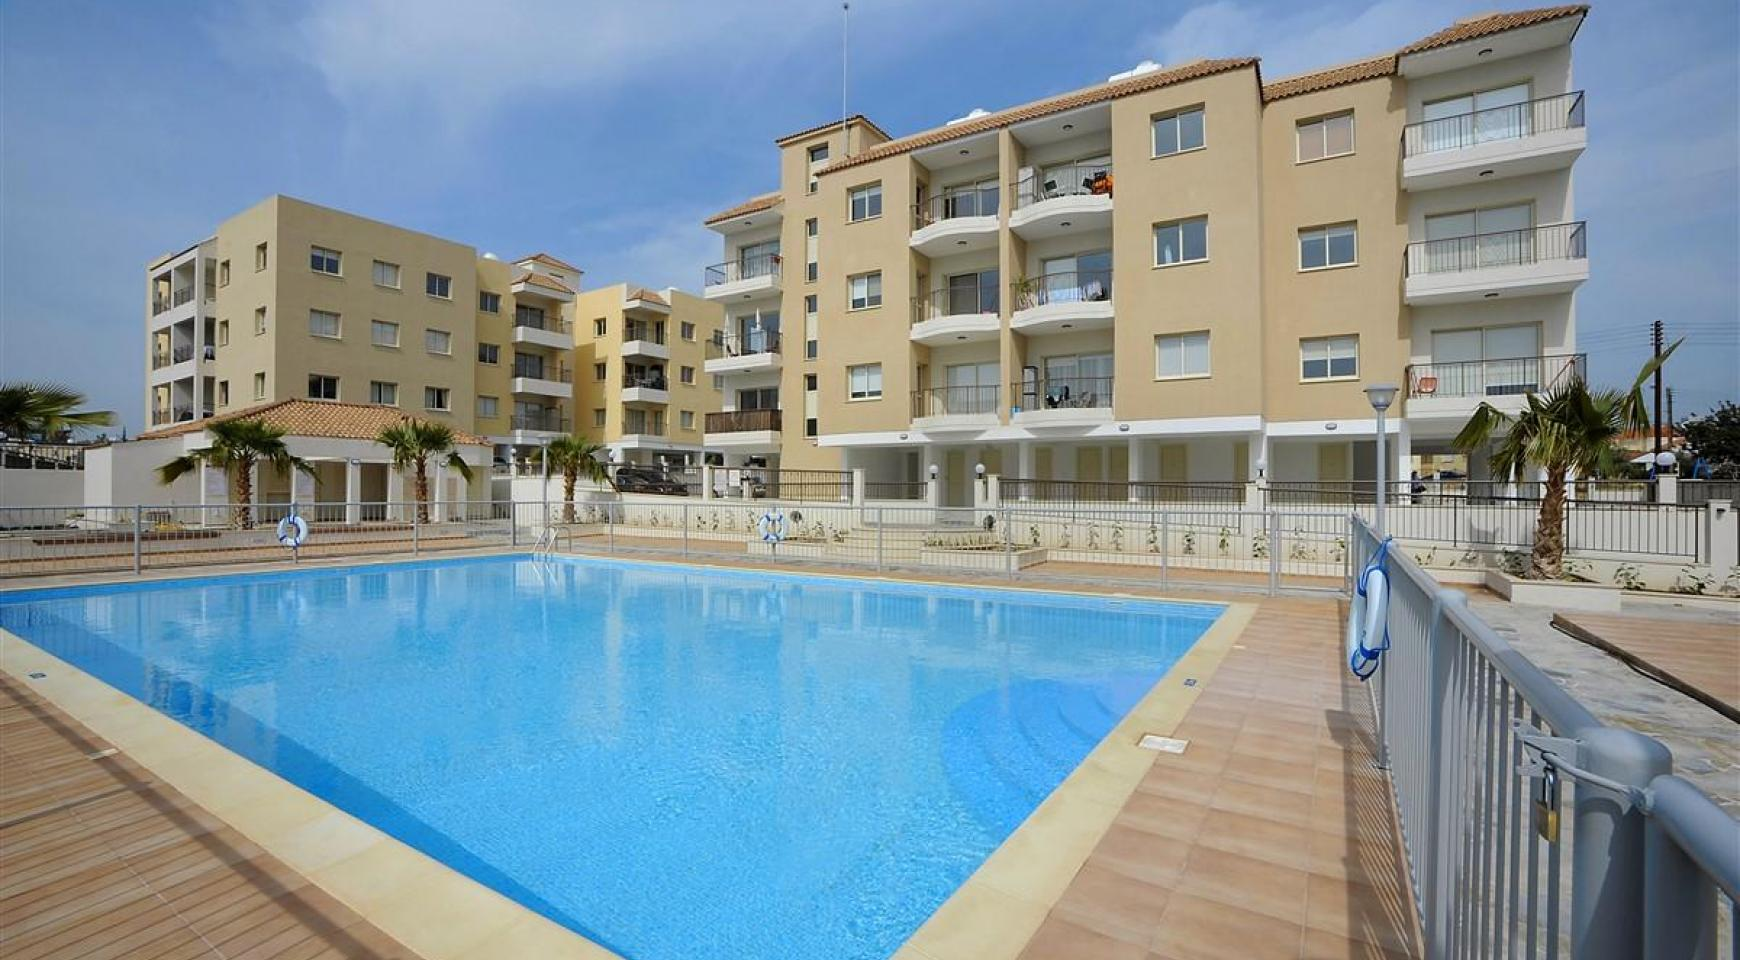 2 Bedroom Apartment in a Complex with the Swimming Pool - 1